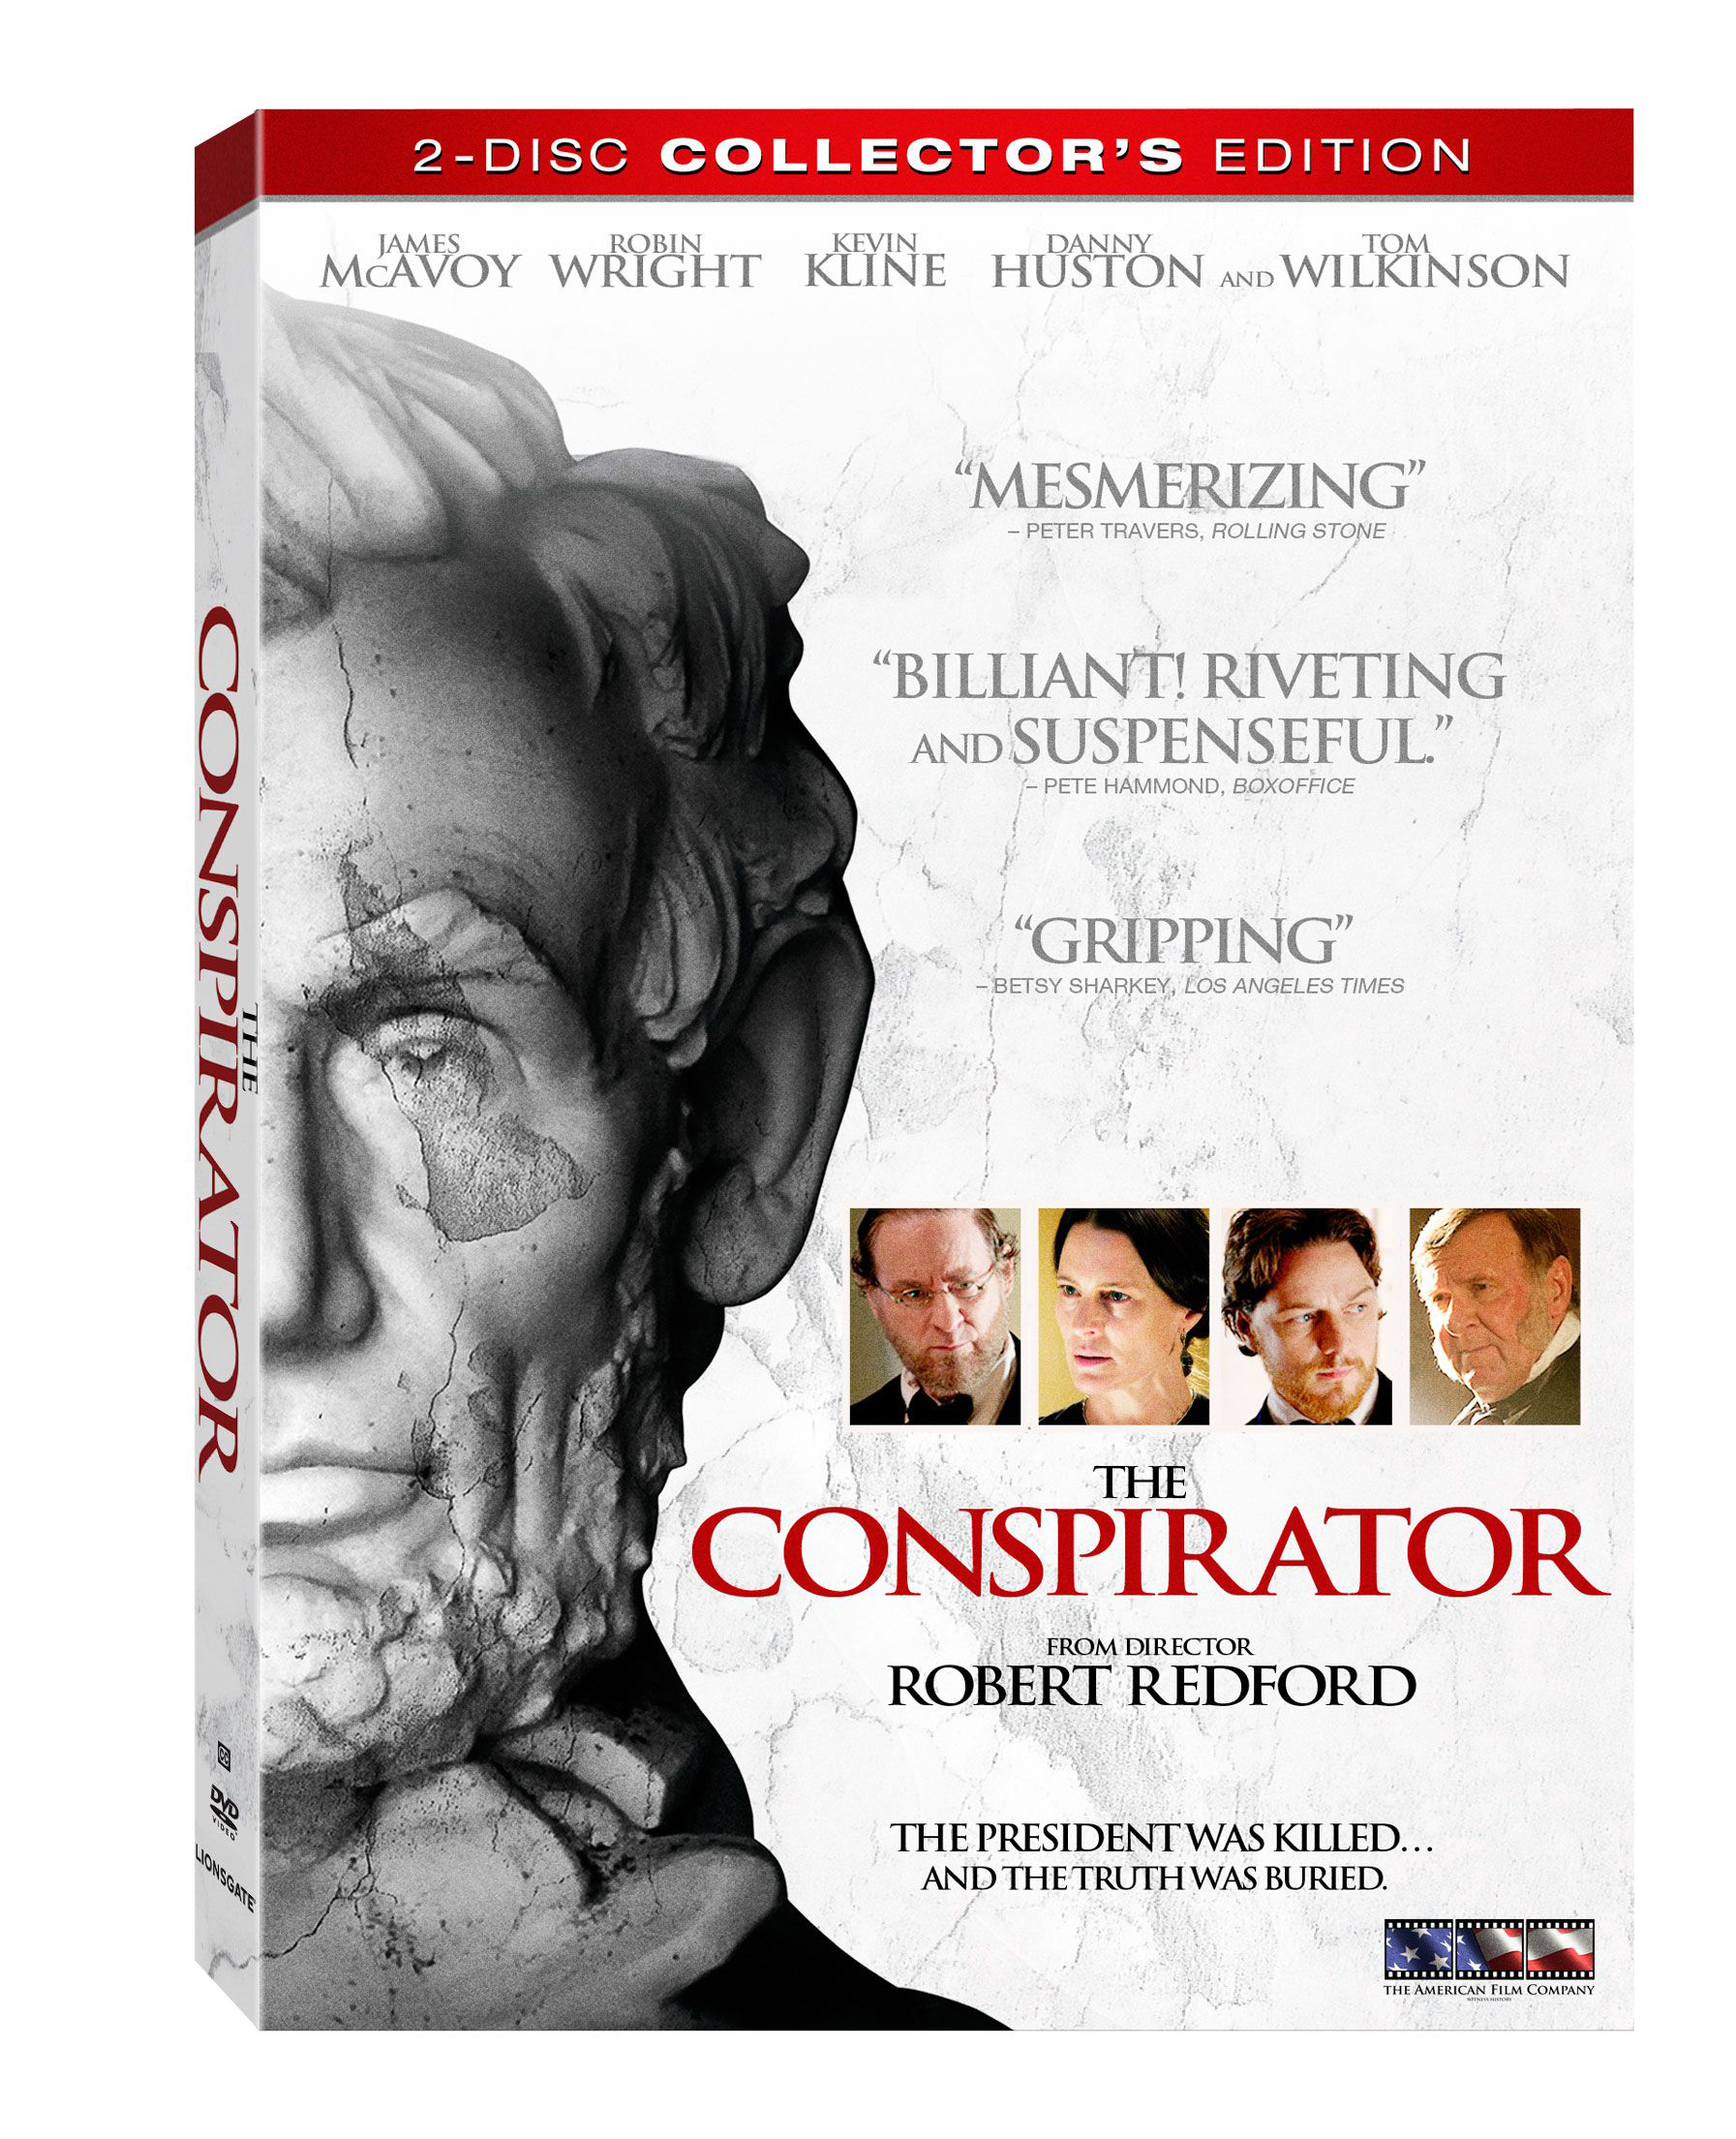 a film analysis of the conspirator directed by robert redford For all of his classic roles and causes, robert redford remains the crusader from all the president's men, skulking around washington, dc, in the middle of the night the conspirator, redford's new film as director (remember, he does that too), strains for timeliness: a terrorism courtroom drama.